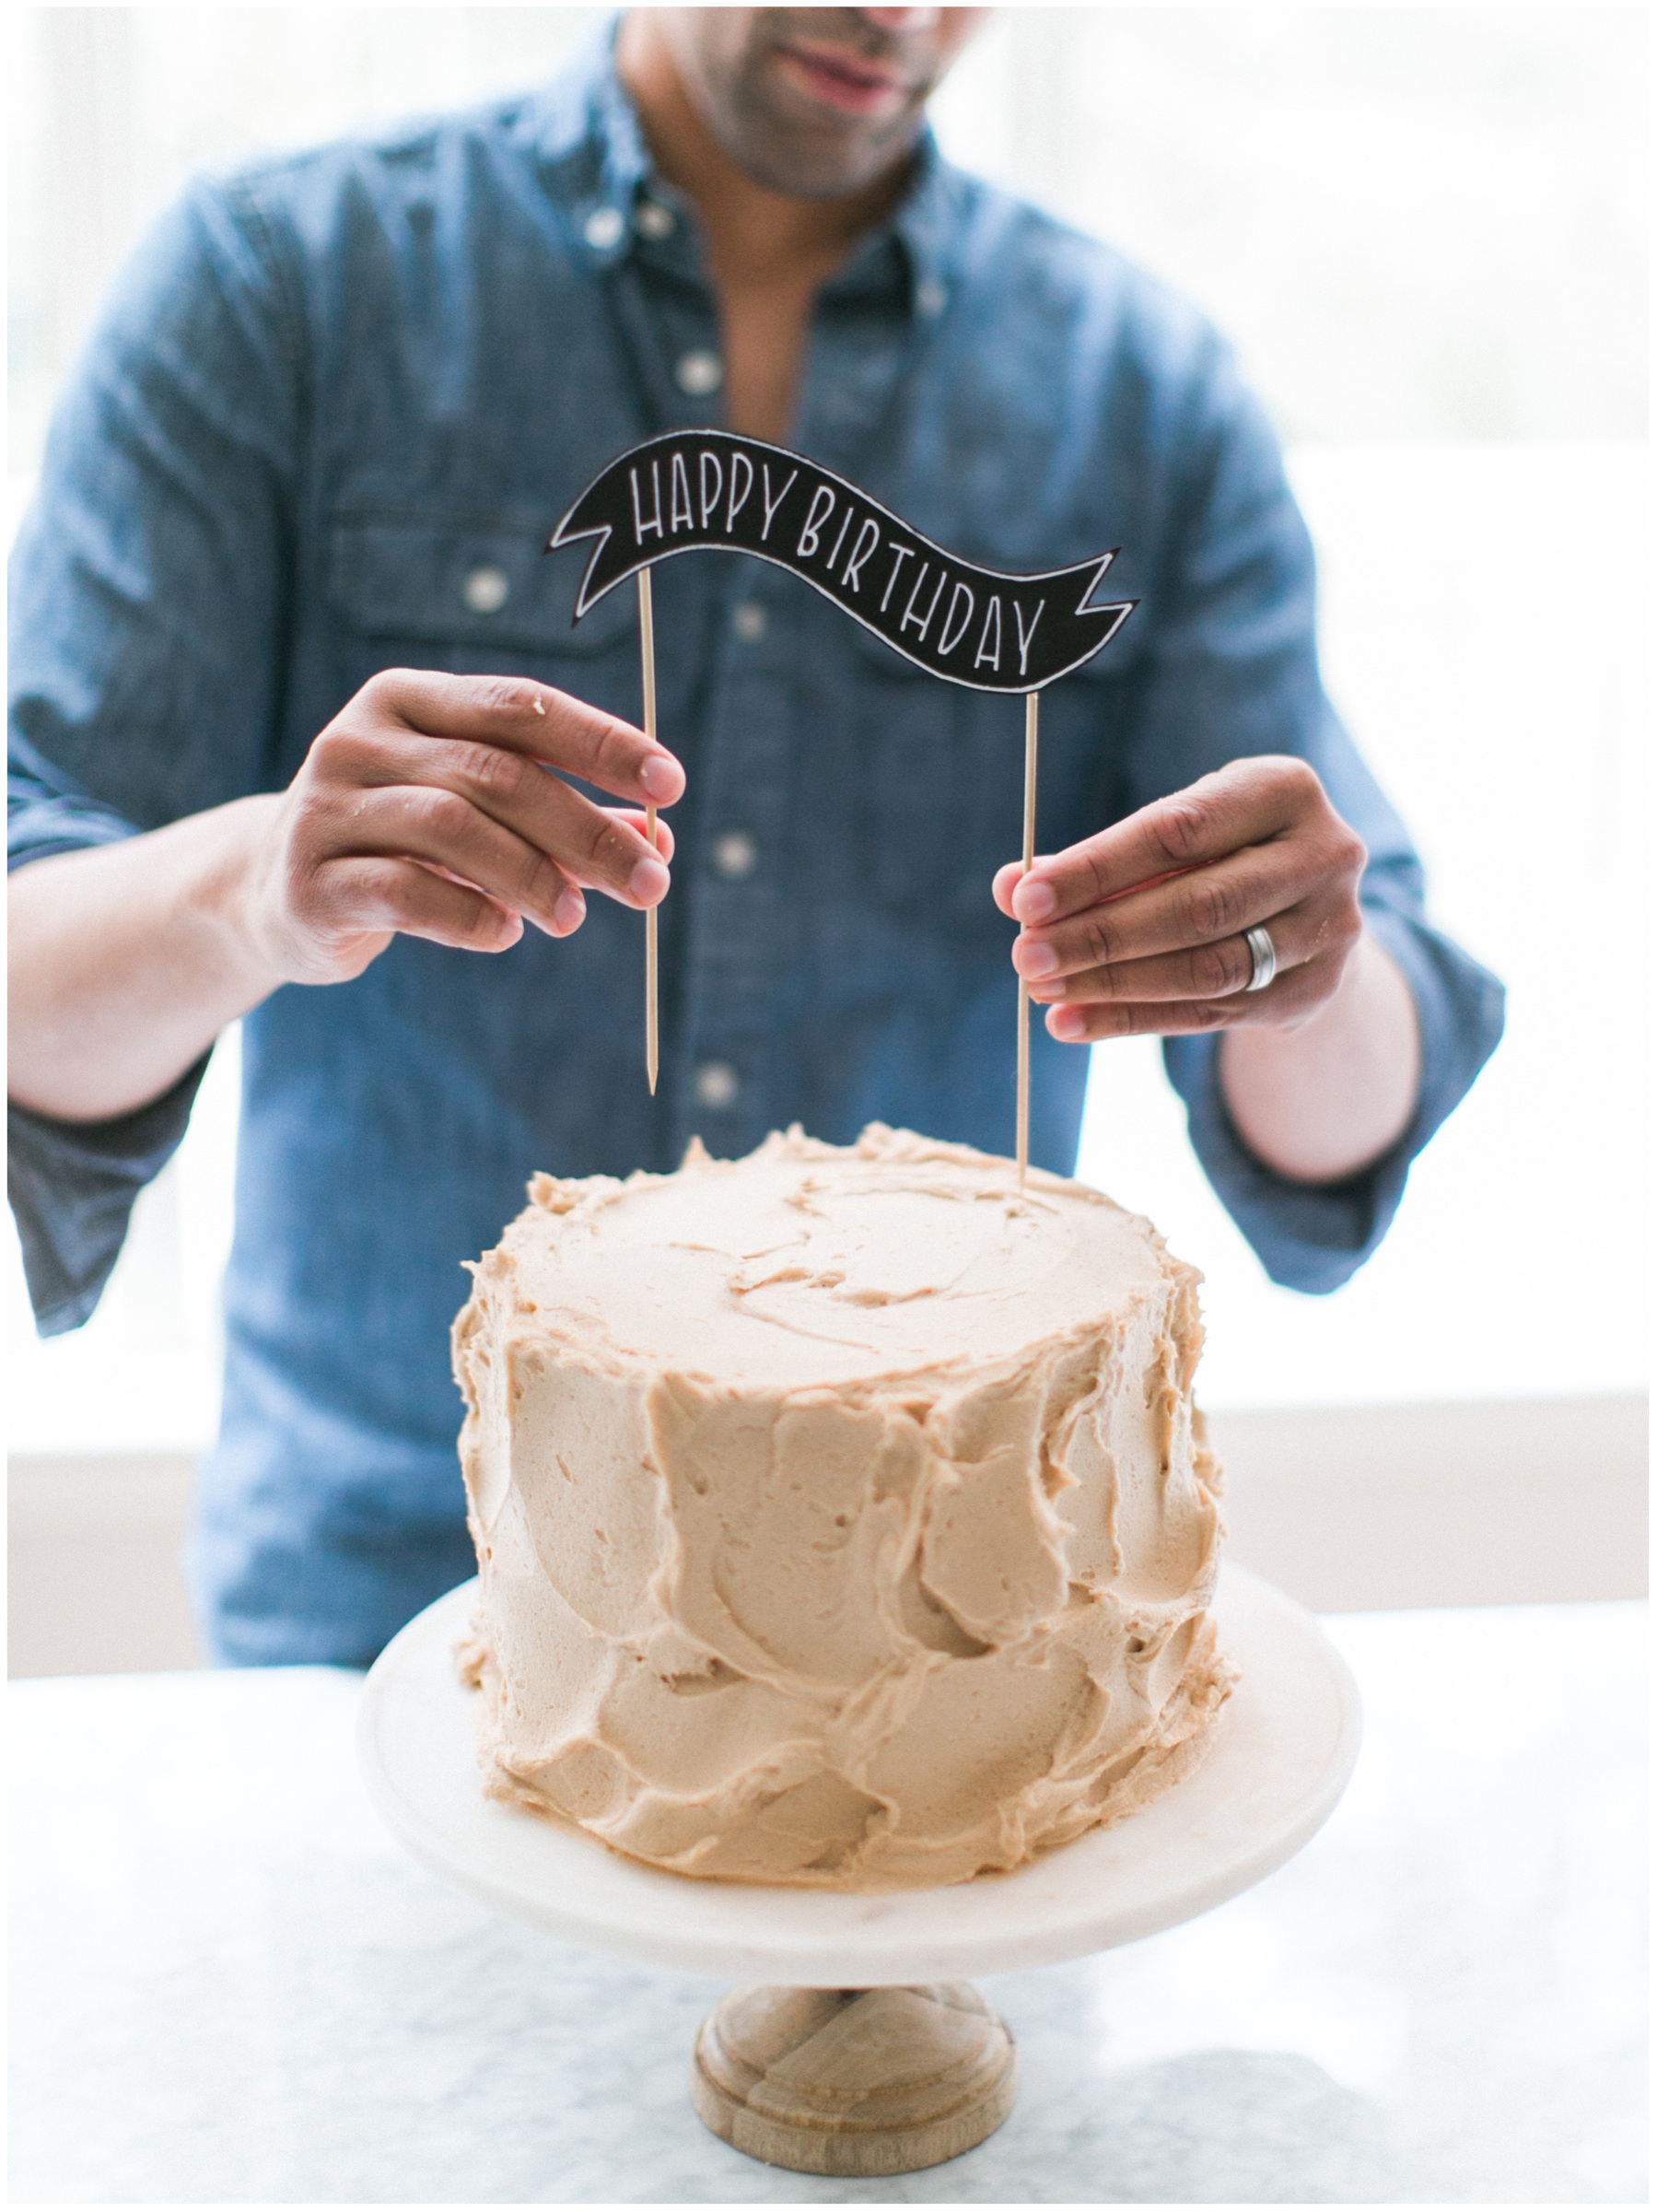 sinclair-and-moore-chocolate-peanutbutter-cake-25